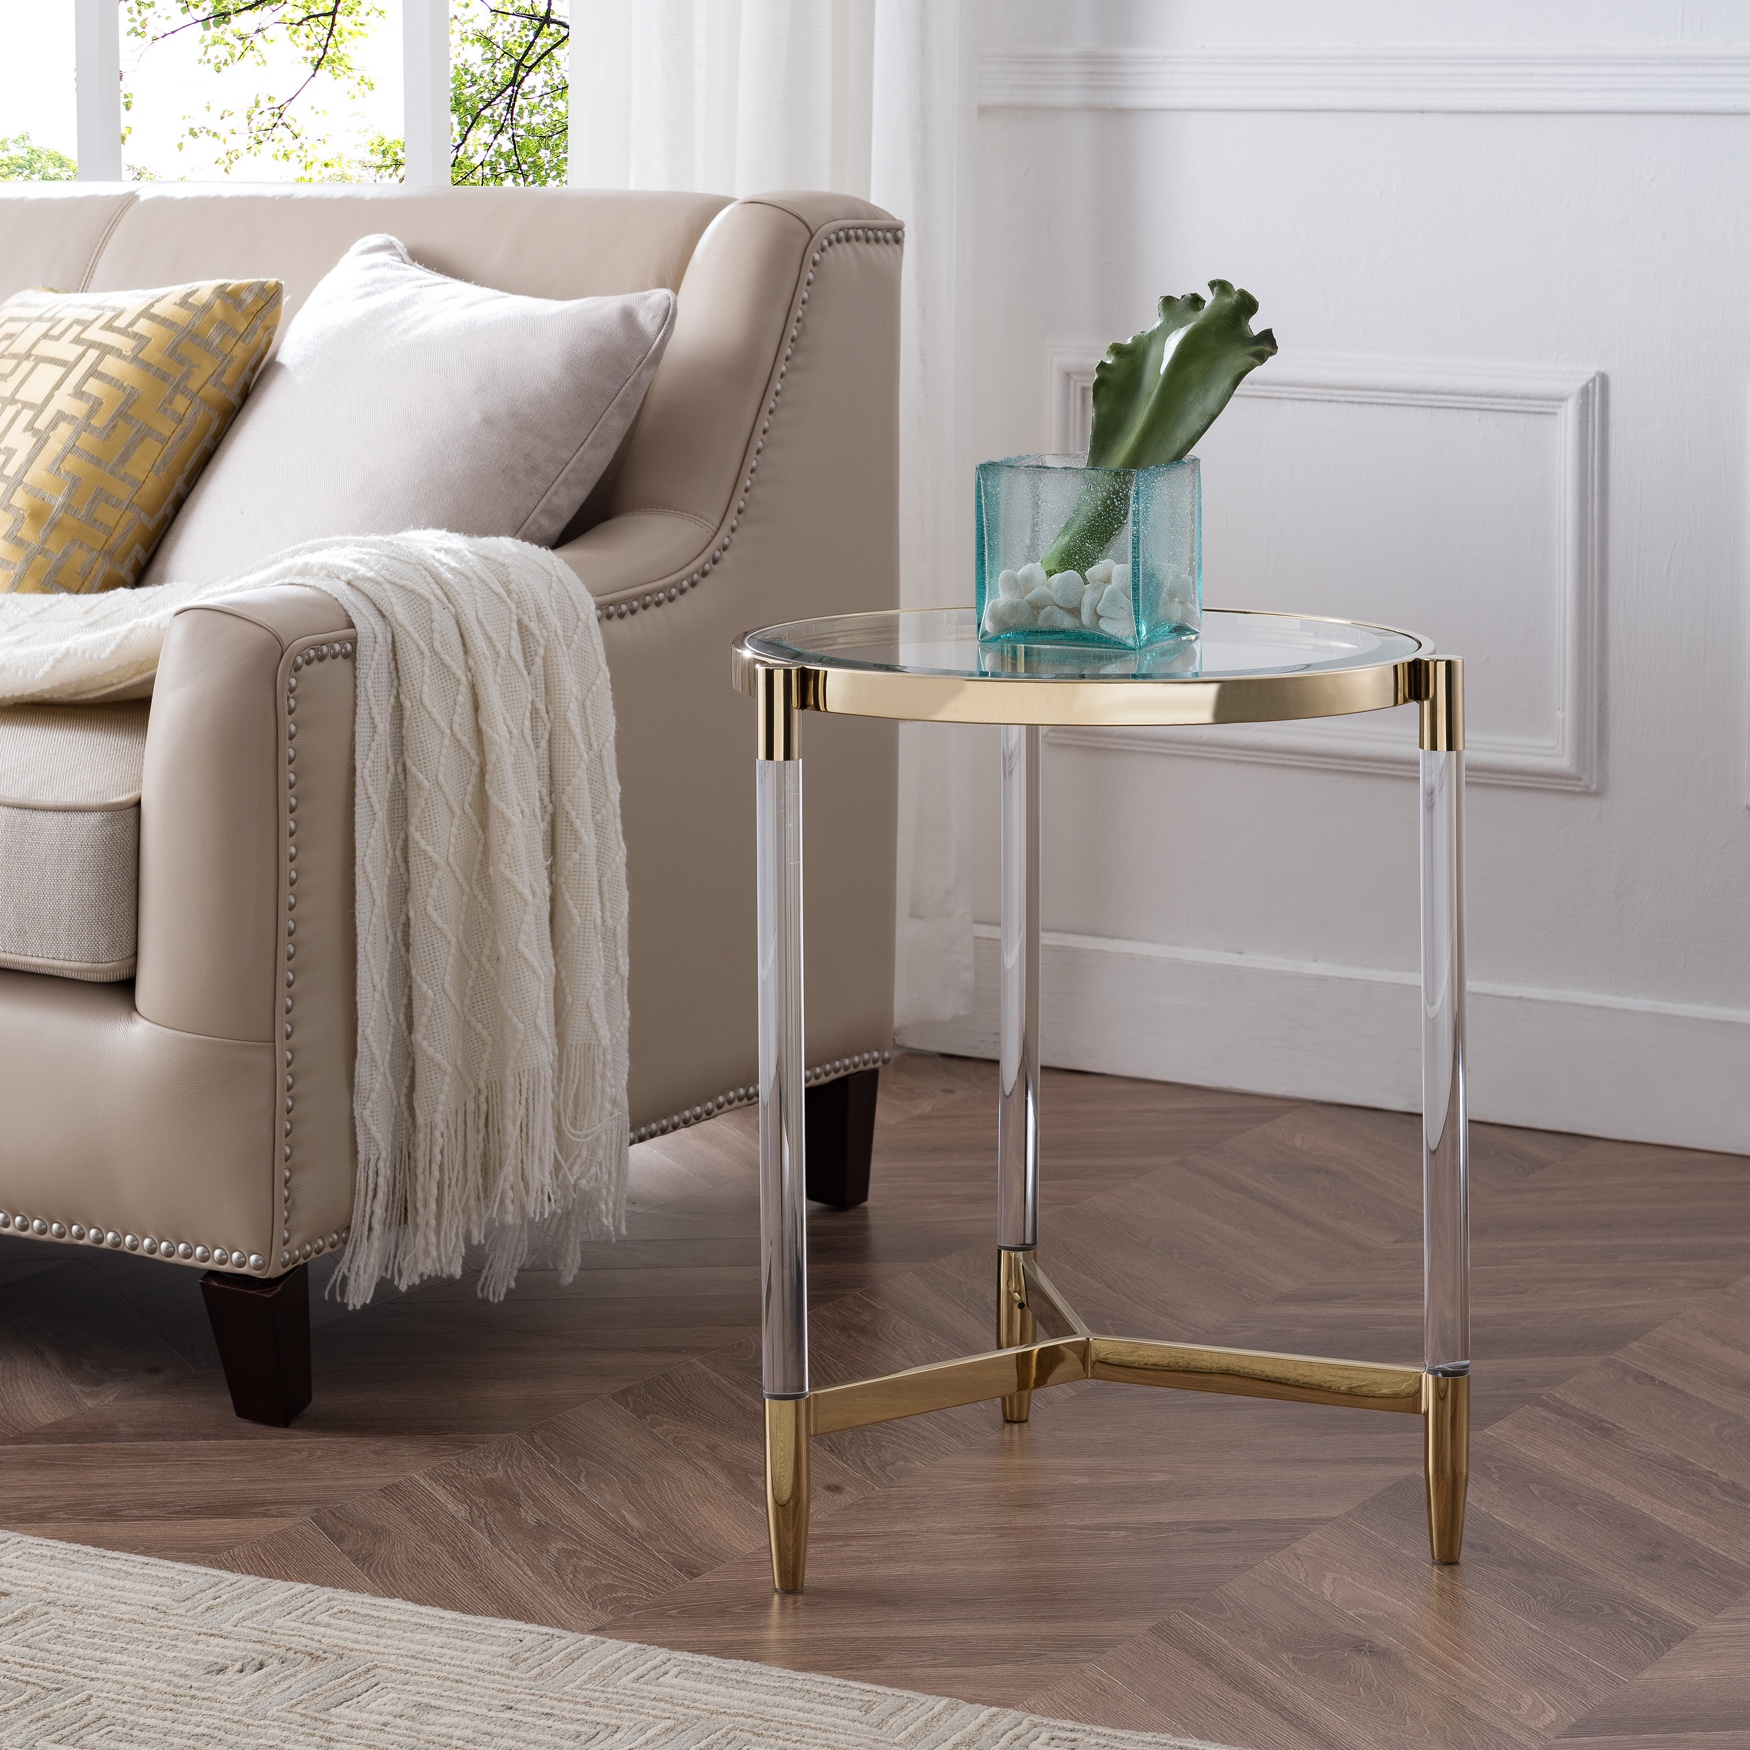 Covel Acrylic End Table, GOLD